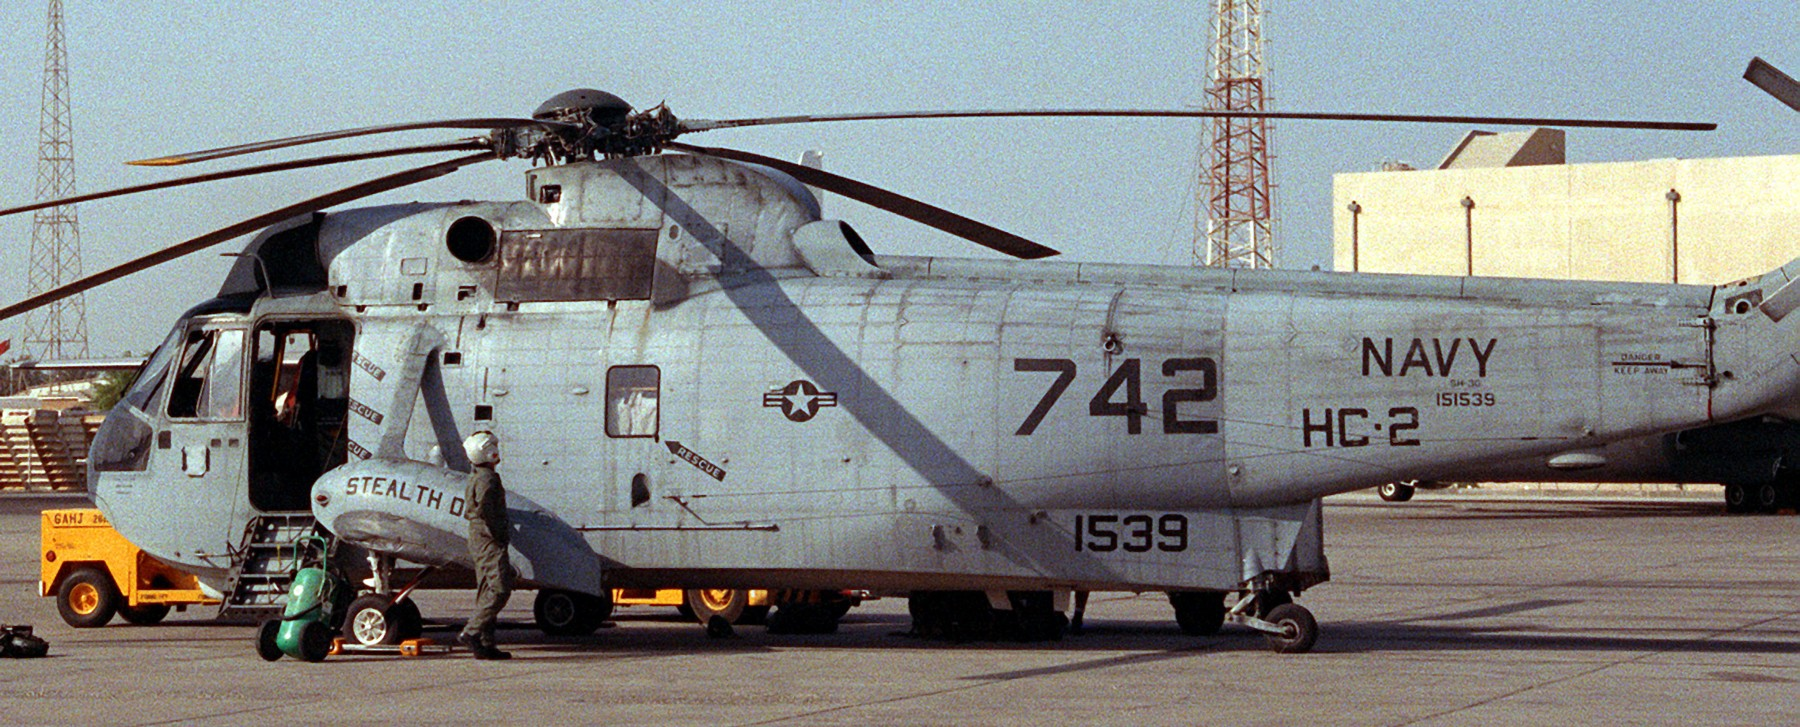 HC-2 Fleet Angels Helicopter Combat Support Squadron US Navy